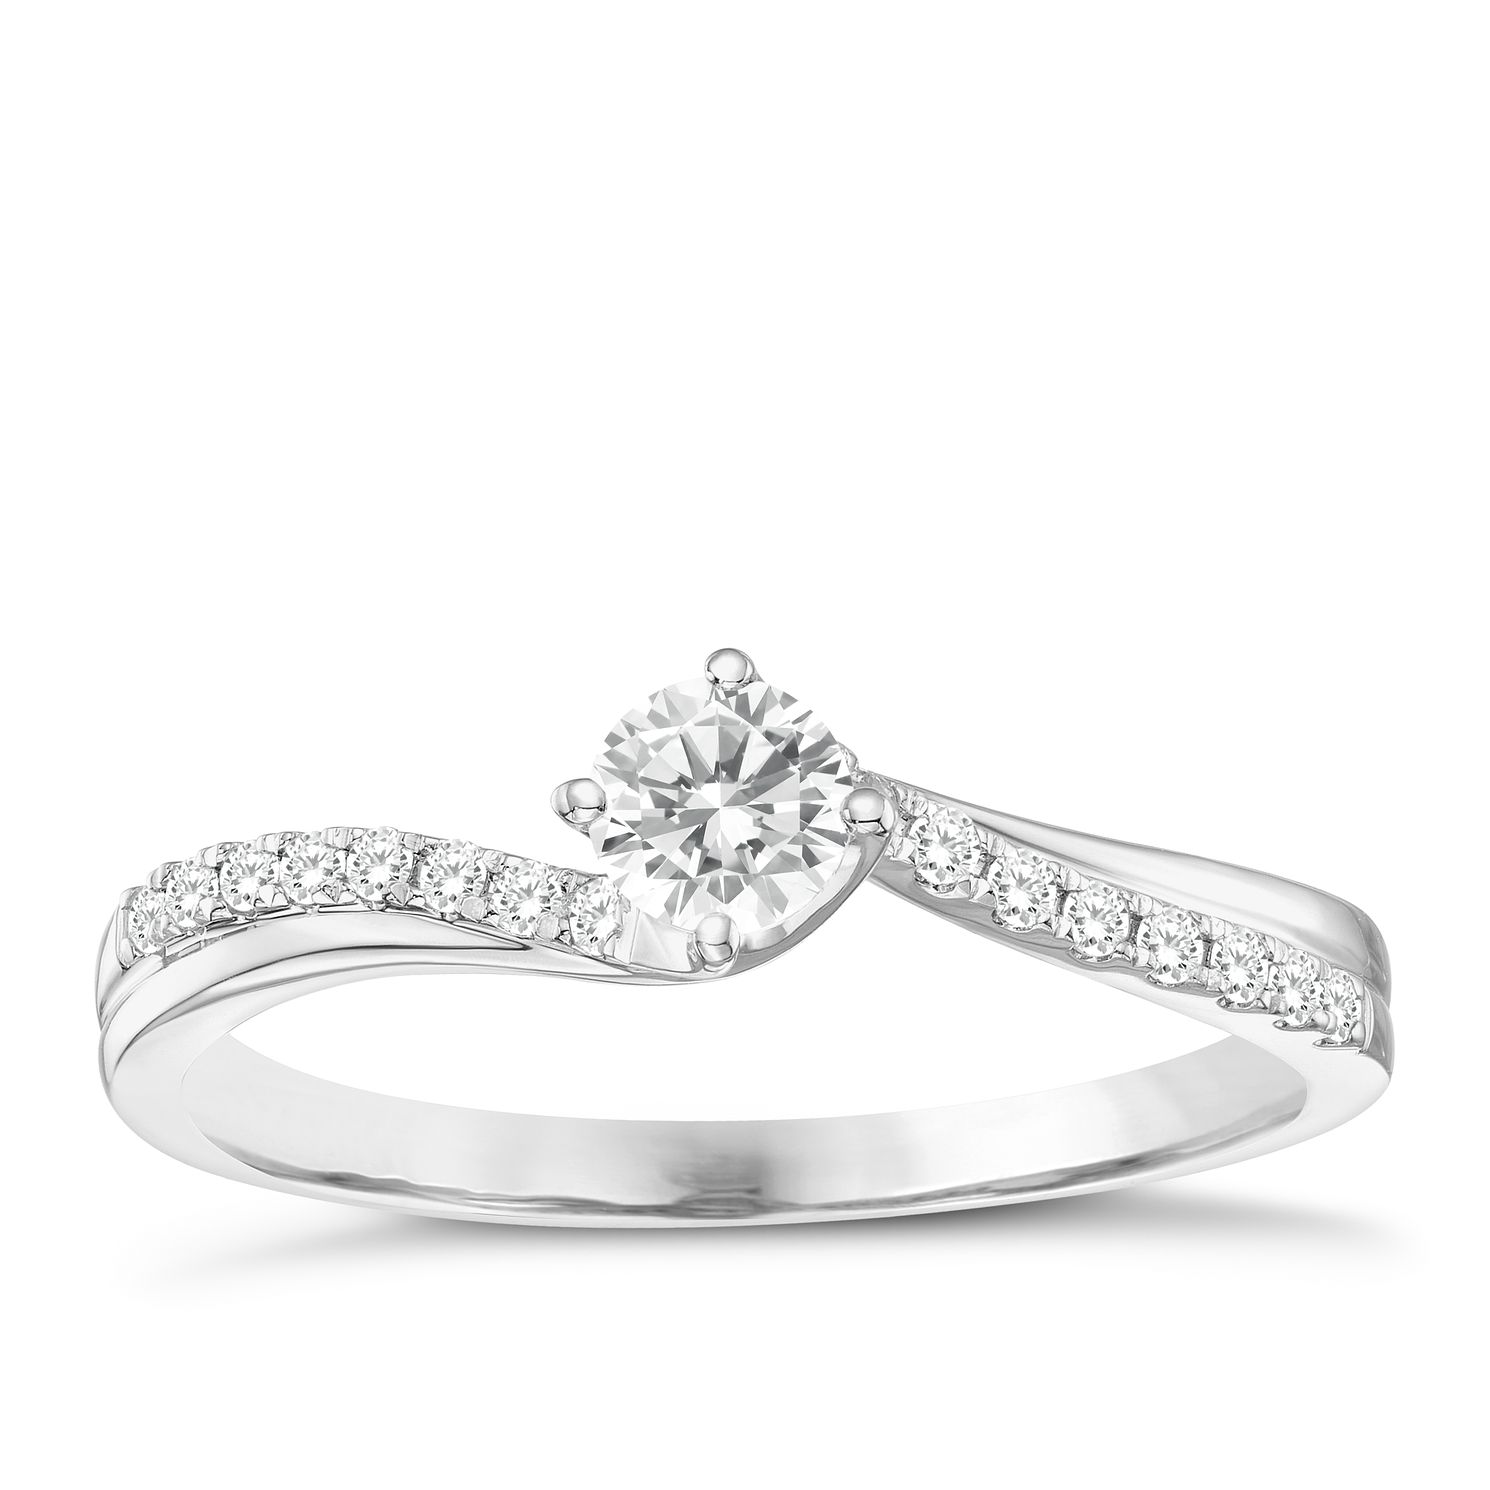 18ct White Gold 0.33ct Total Diamond Solitaire Twist Ring - Product number 8349312